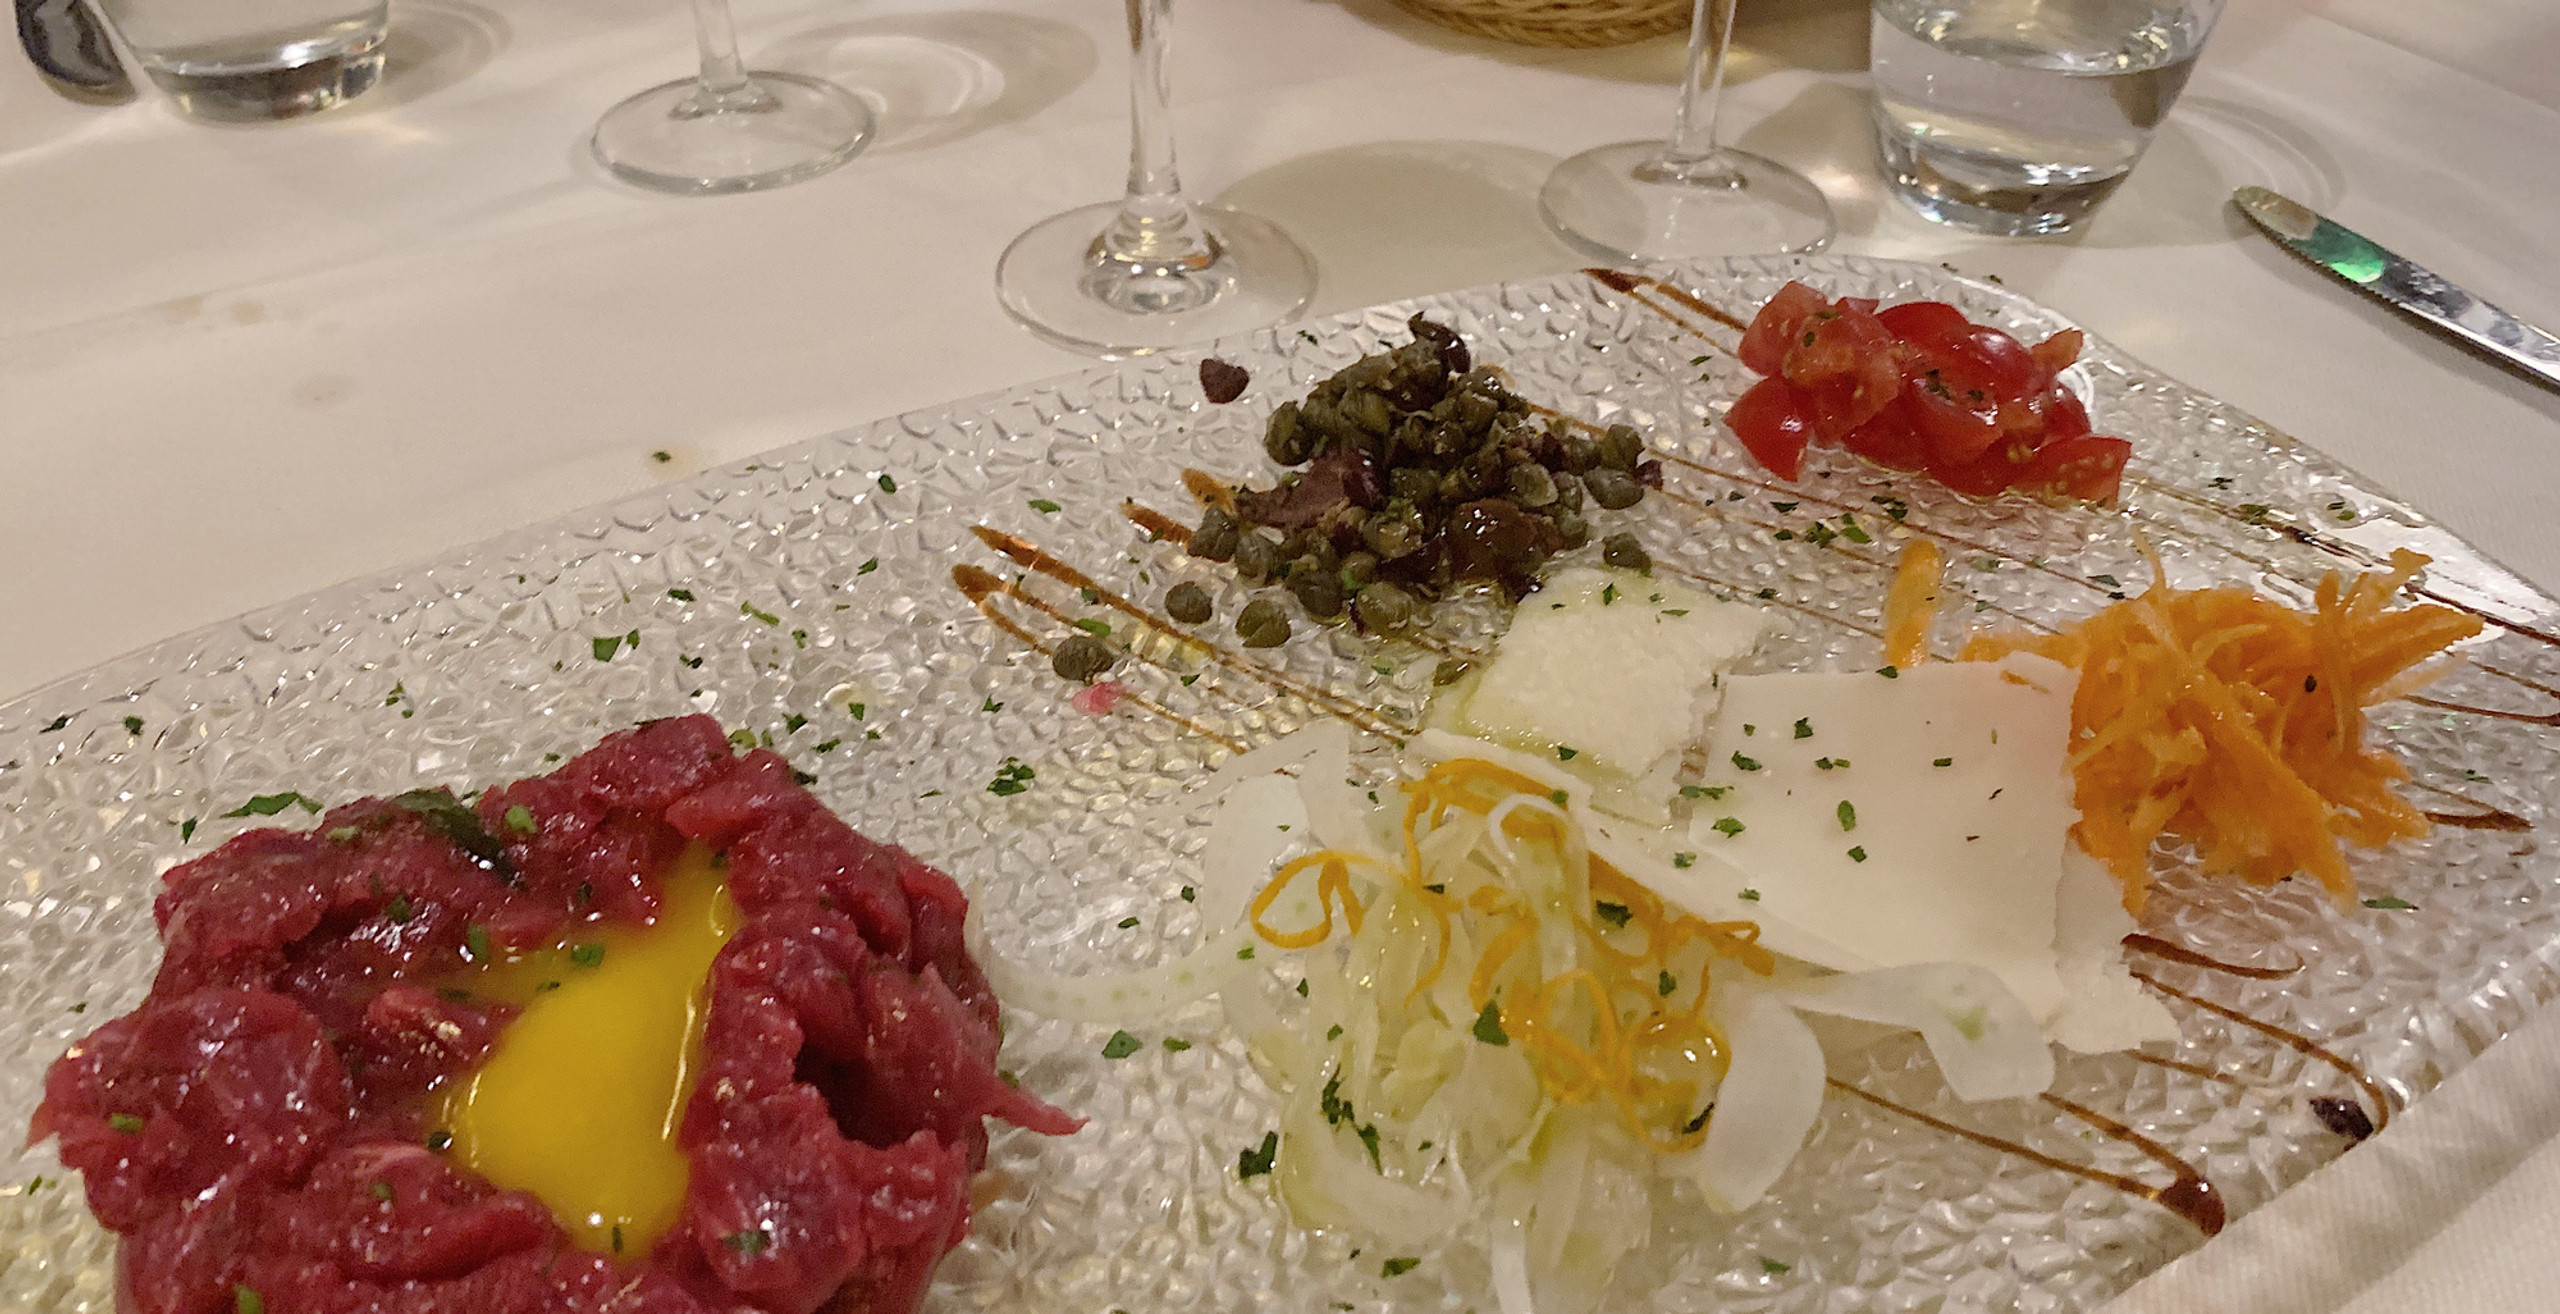 Beef Carpaccio...egg yolk for richness and your choice of !ccompaniments.  I go with capers@